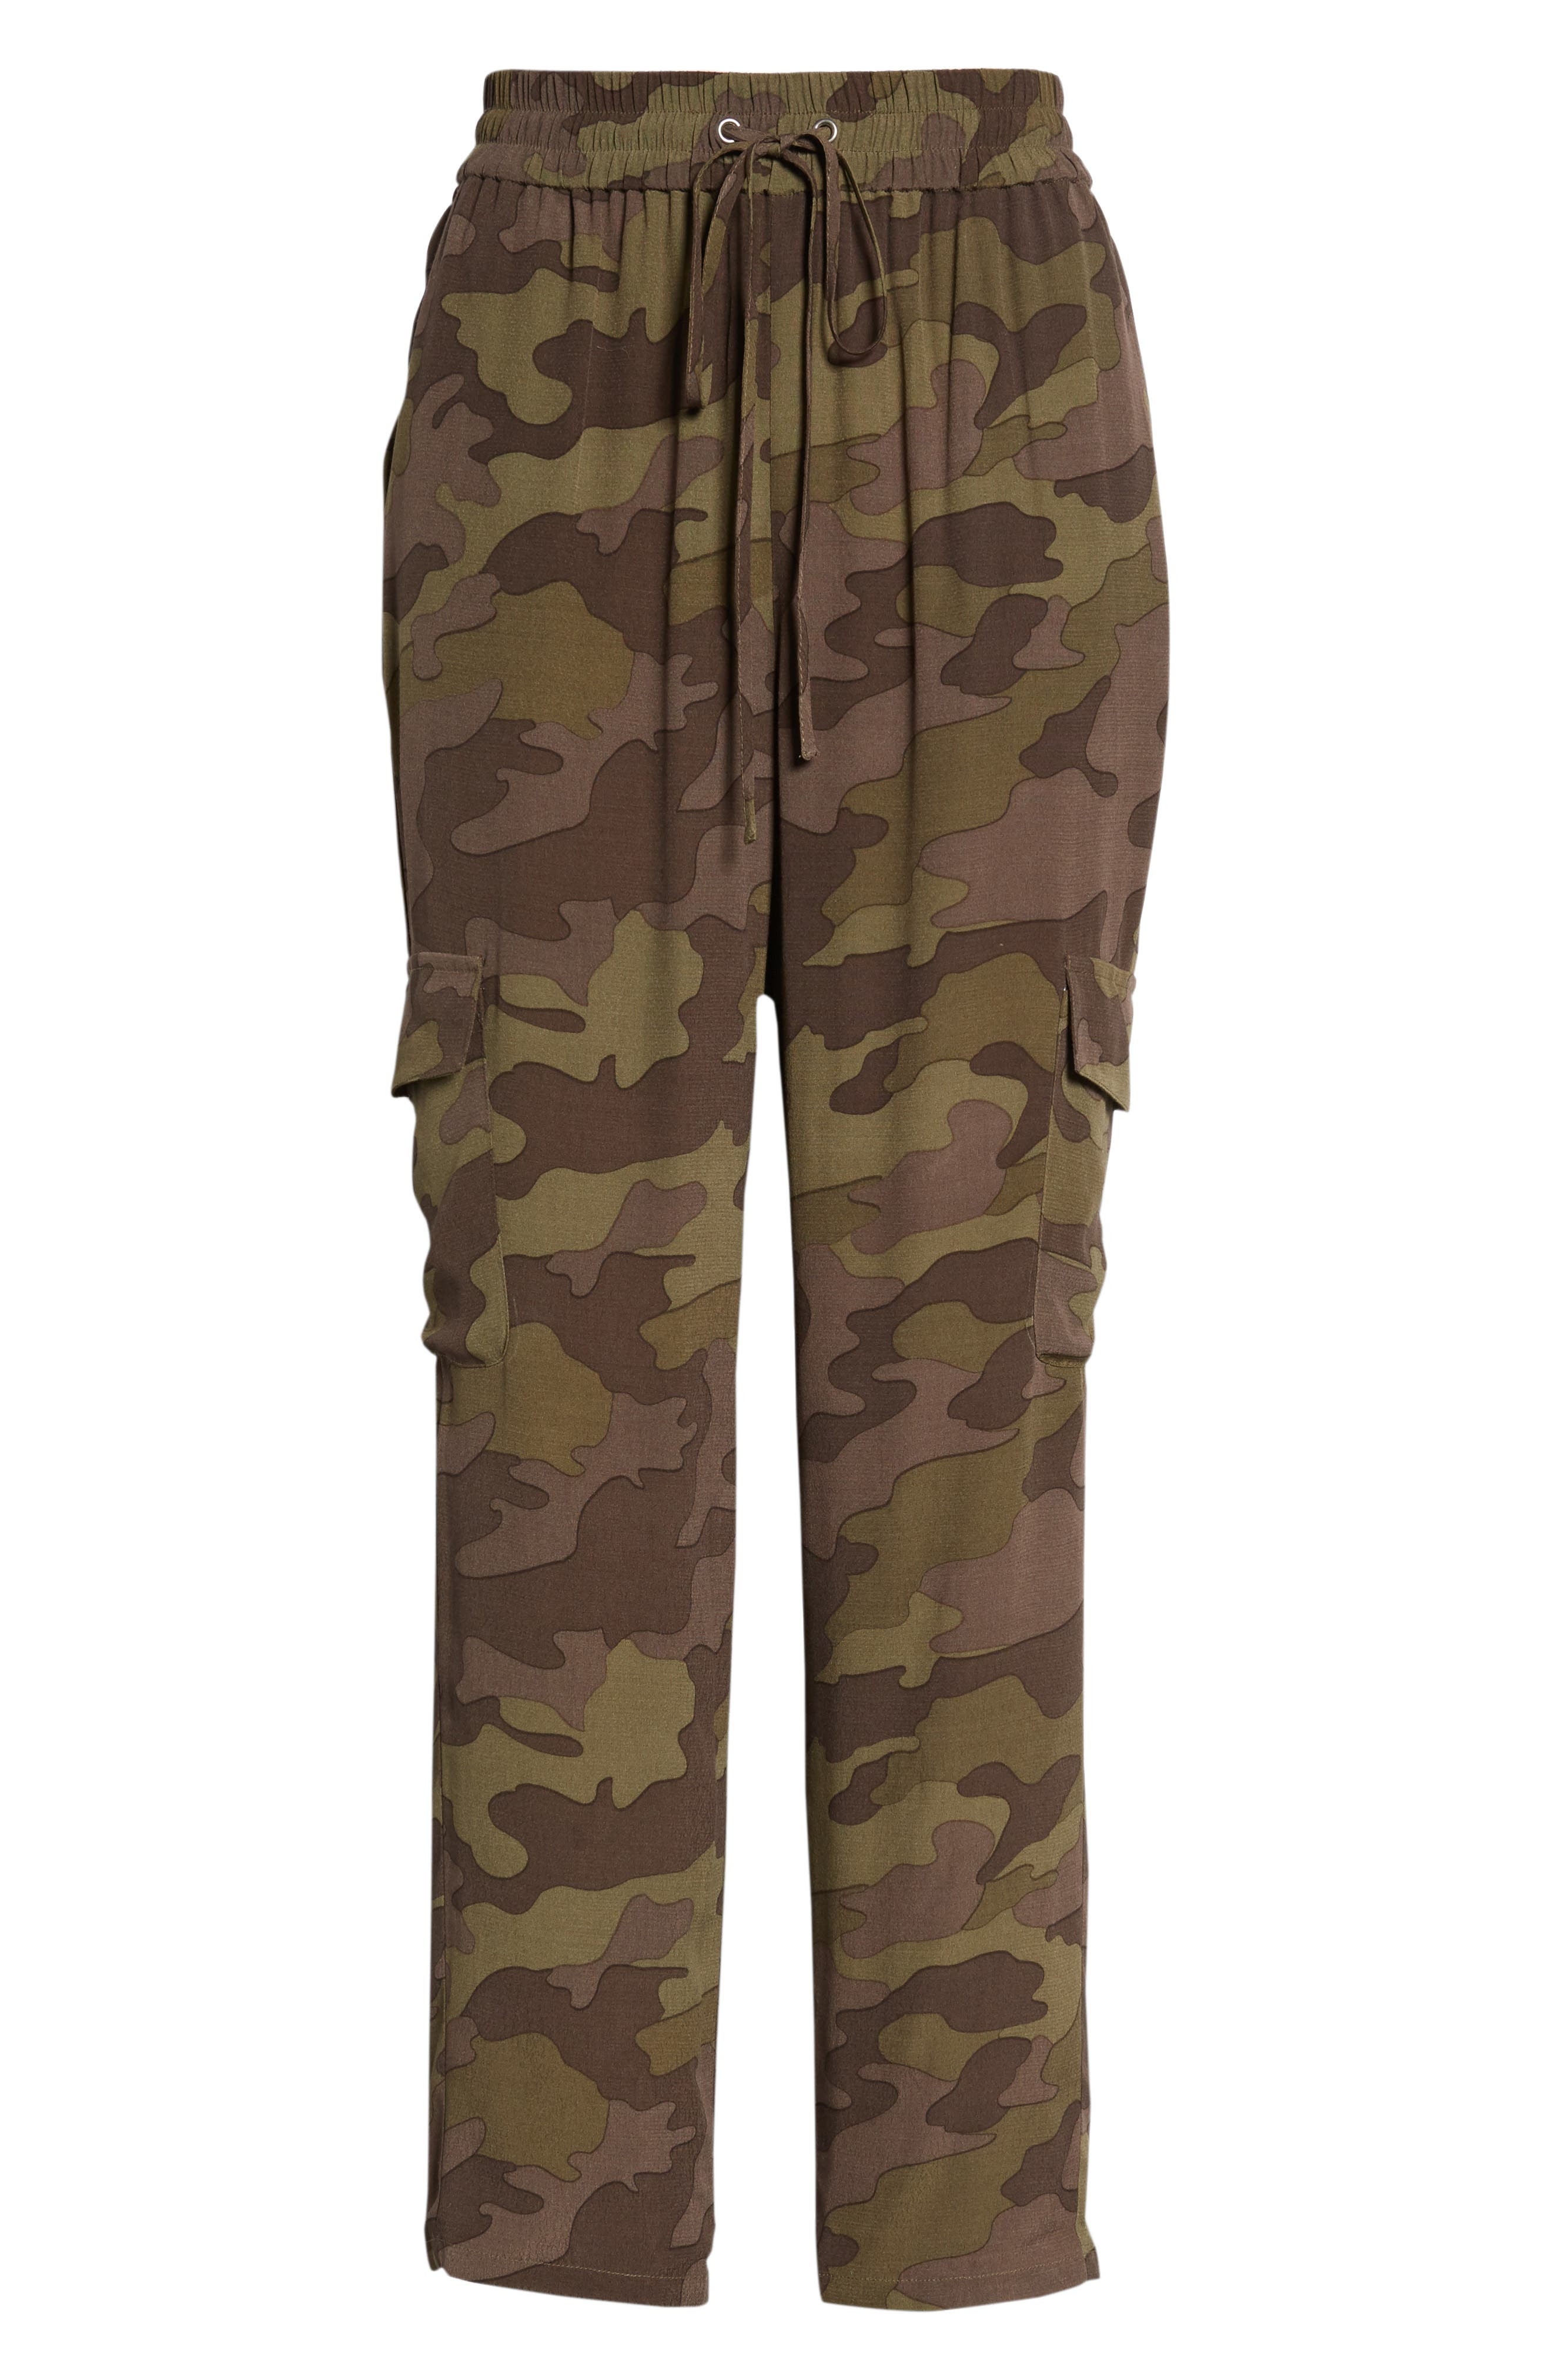 High Rise Camouflage Cargo Pants,                             Alternate thumbnail 8, color,                             210